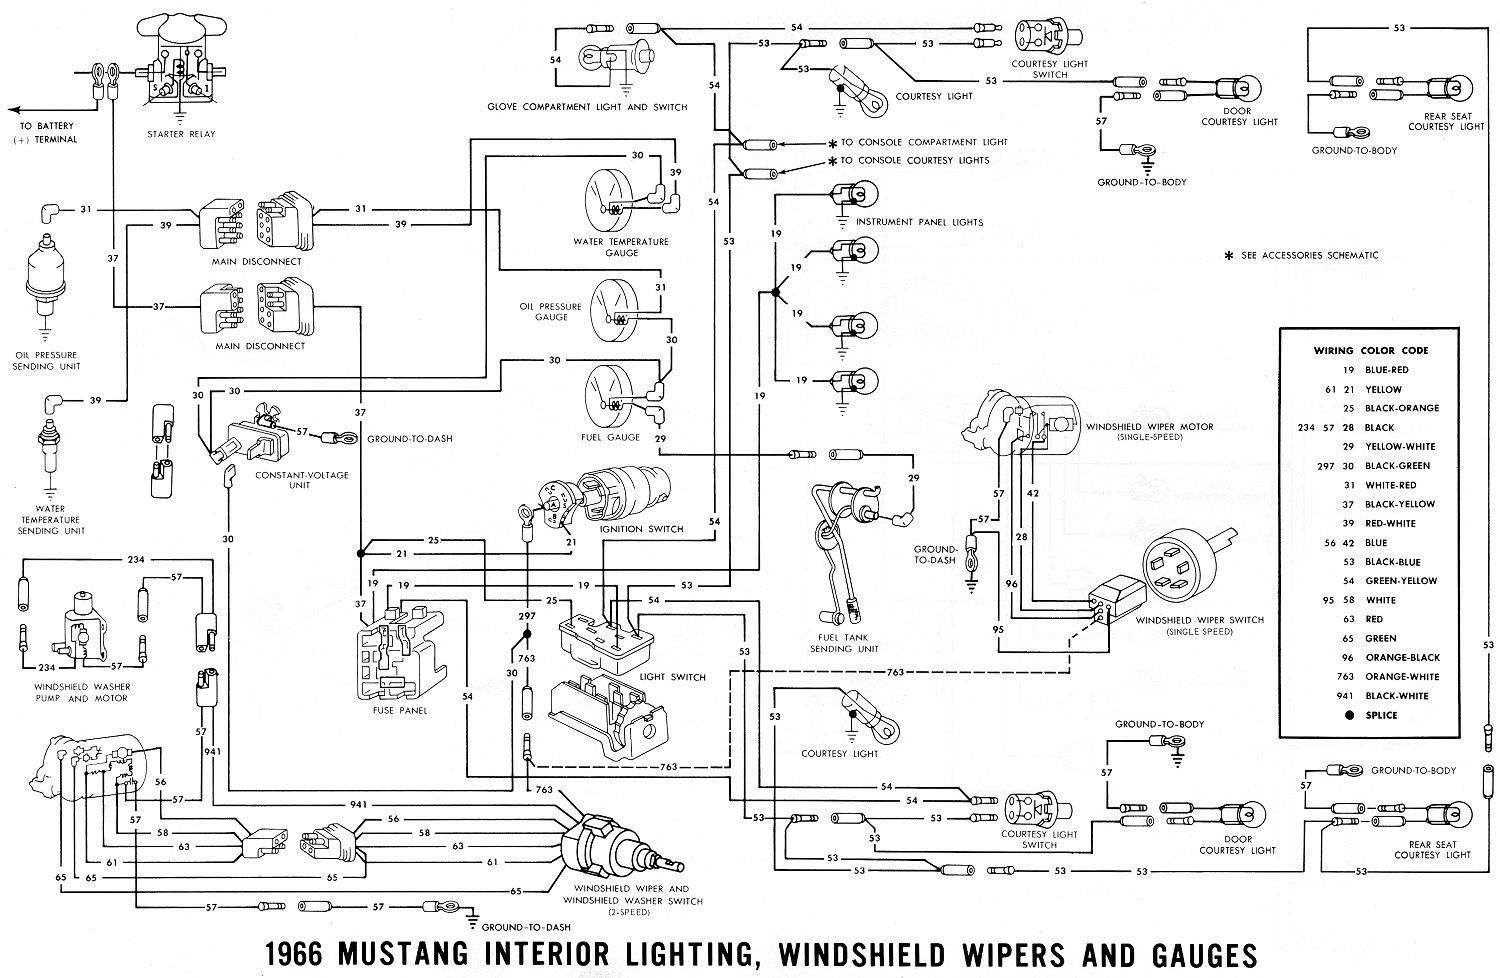 1966 mustang wiring diagrams - average joe restoration for 1966 mustang wiring  diagram